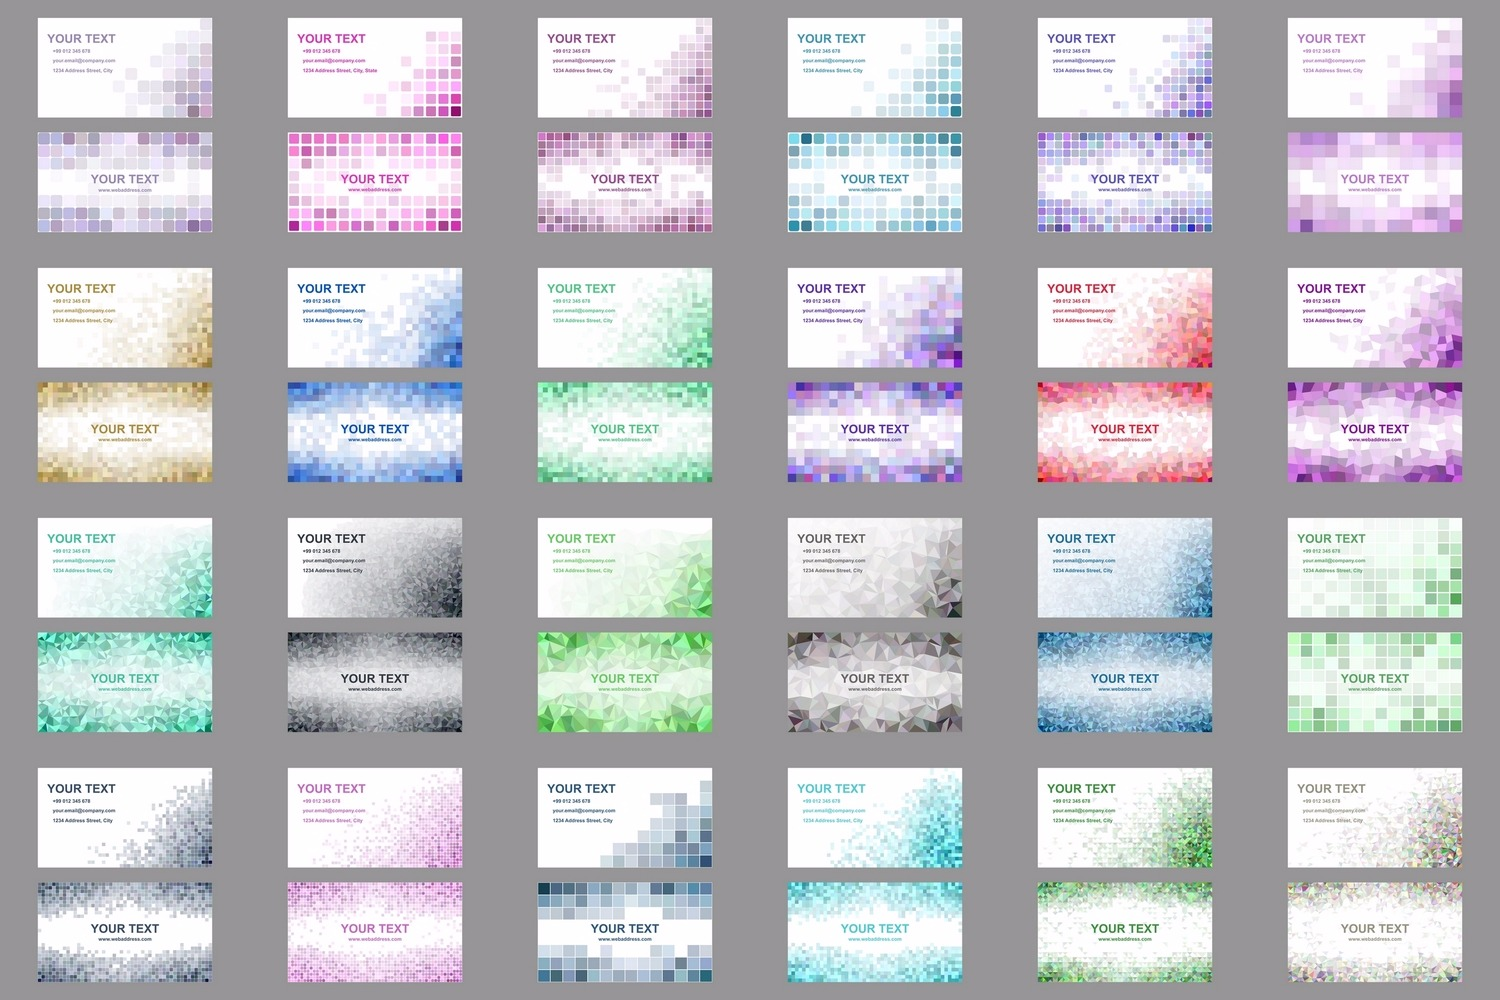 50x2 mosaic design business card templates (EPS, AI, JPG 5000x5000) example image 3